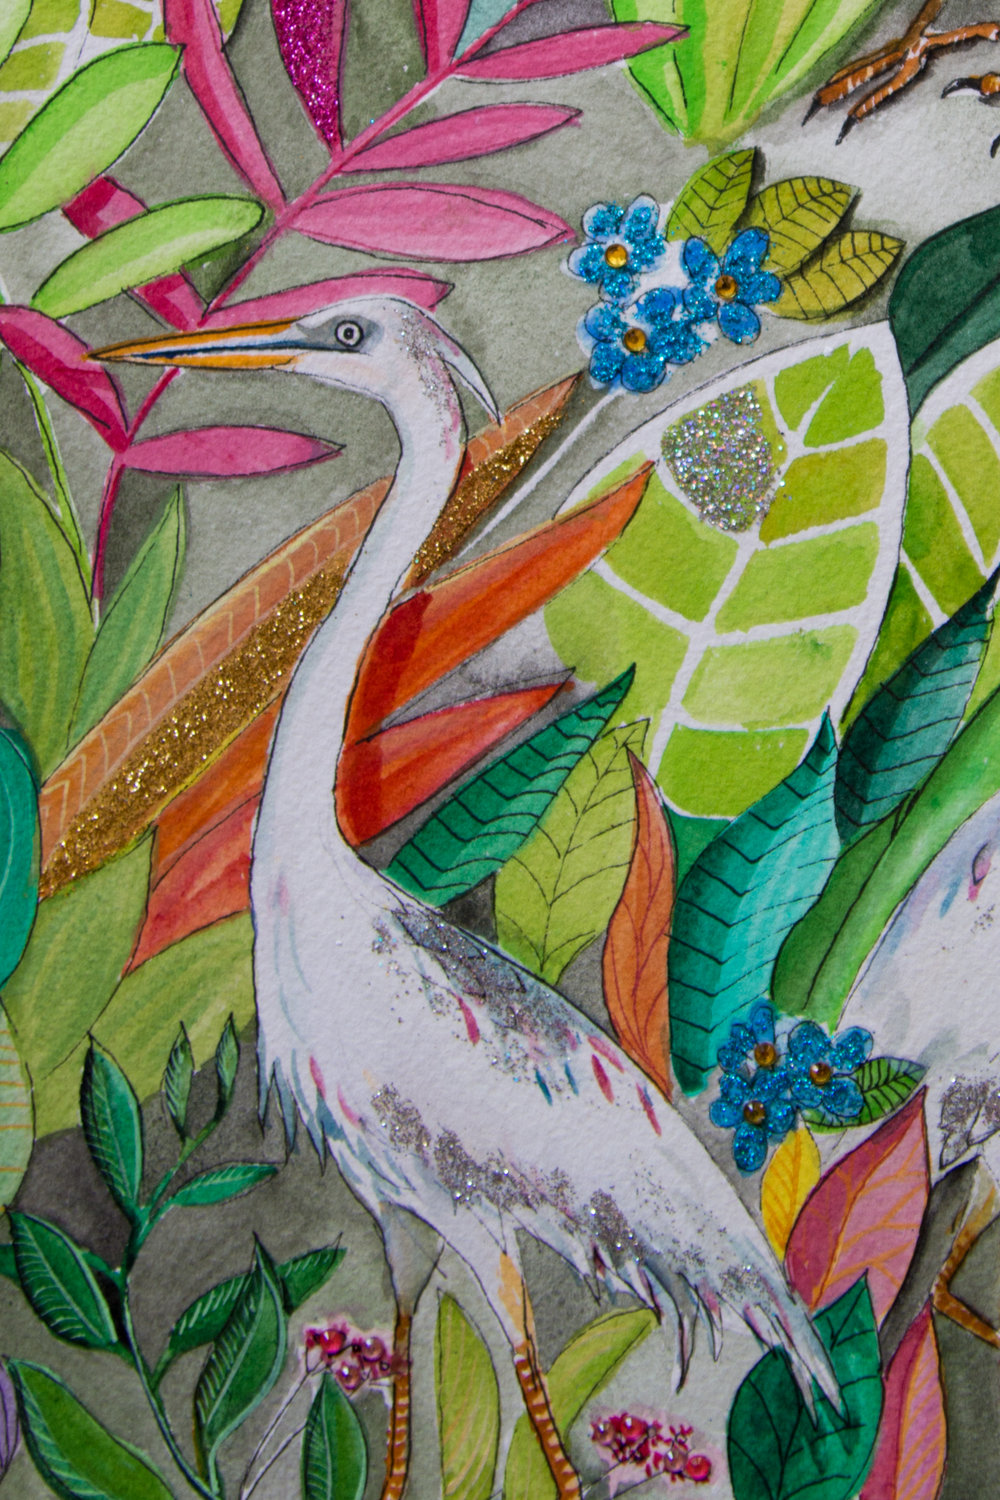 Cranes in The Garden Detail - Zoe Wood 2017 (1 of 1).jpg